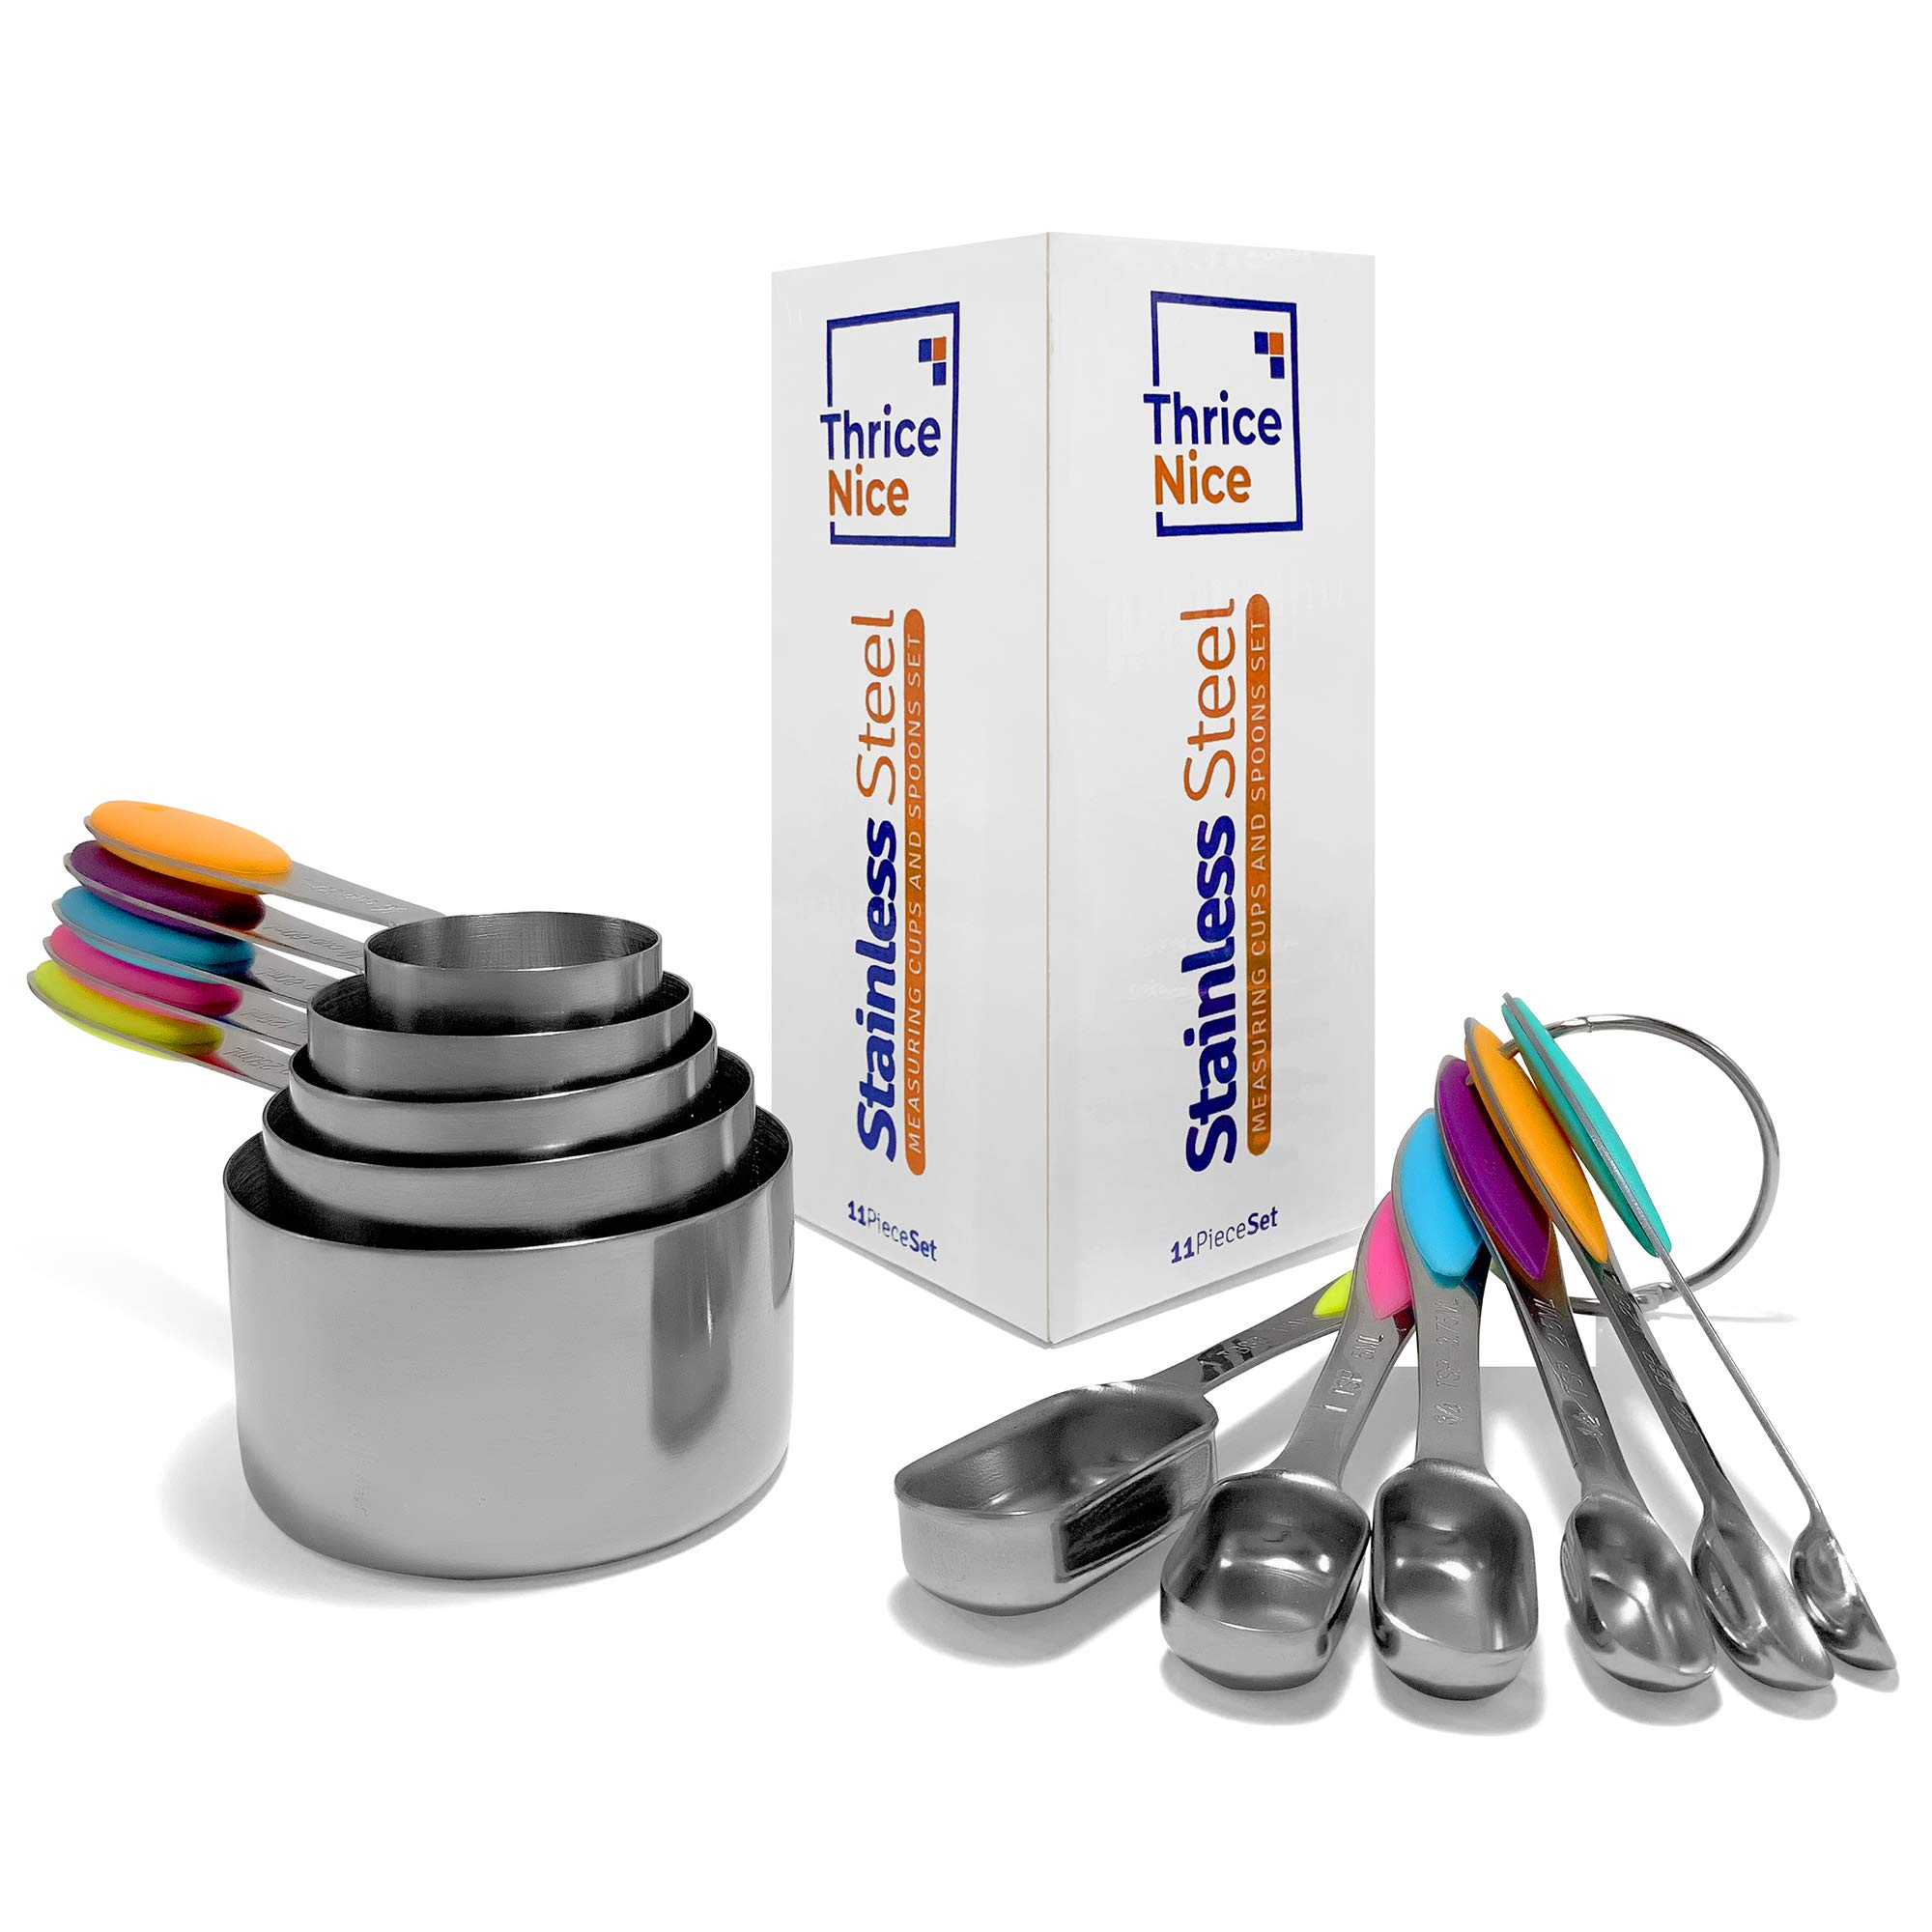 Unique 11-Piece Stainless Steel Measuring Cups & Spoons Set by Thrice Nice: Liquid/Dry Ingredients Dishwasher Safe Colored Silicone Metric/US - Cooking Baking Coffee Tea- 5 Cups & 6 Spoons - Food Safe by Thrice Nice